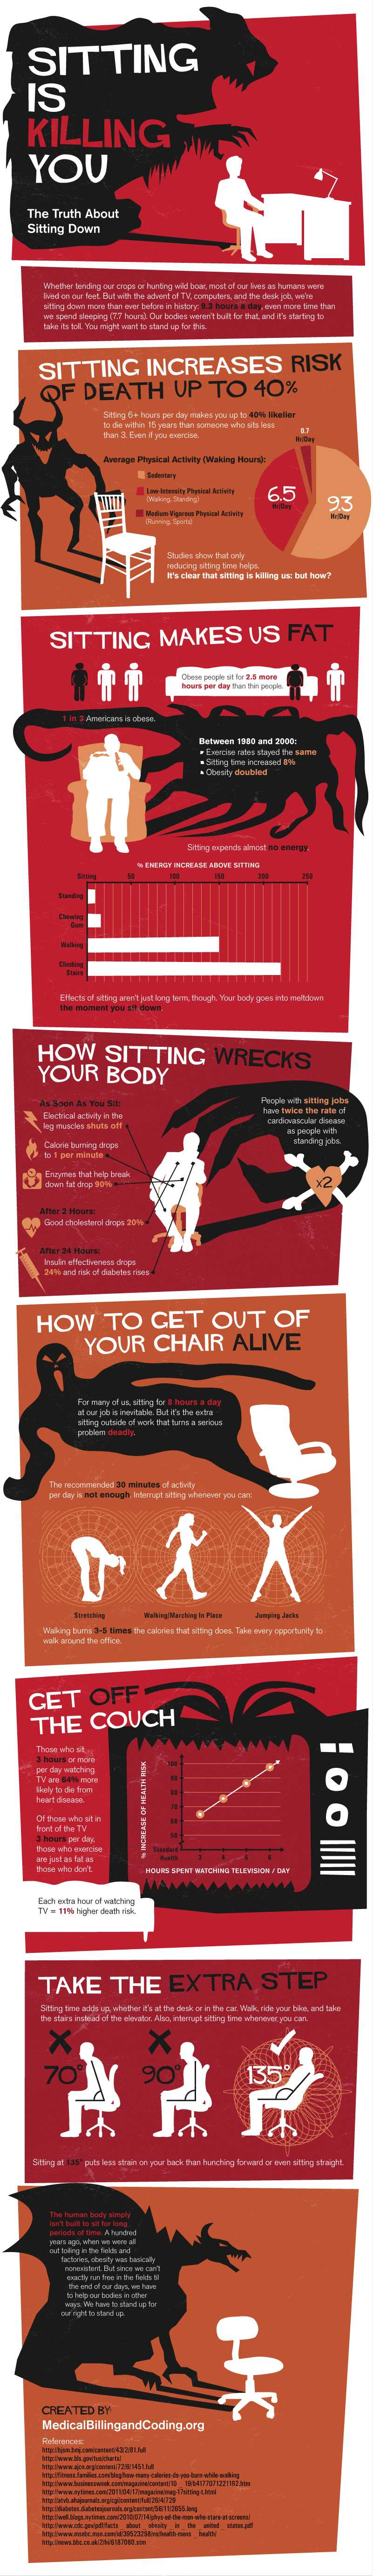 sitting_is_killing_you_infographic